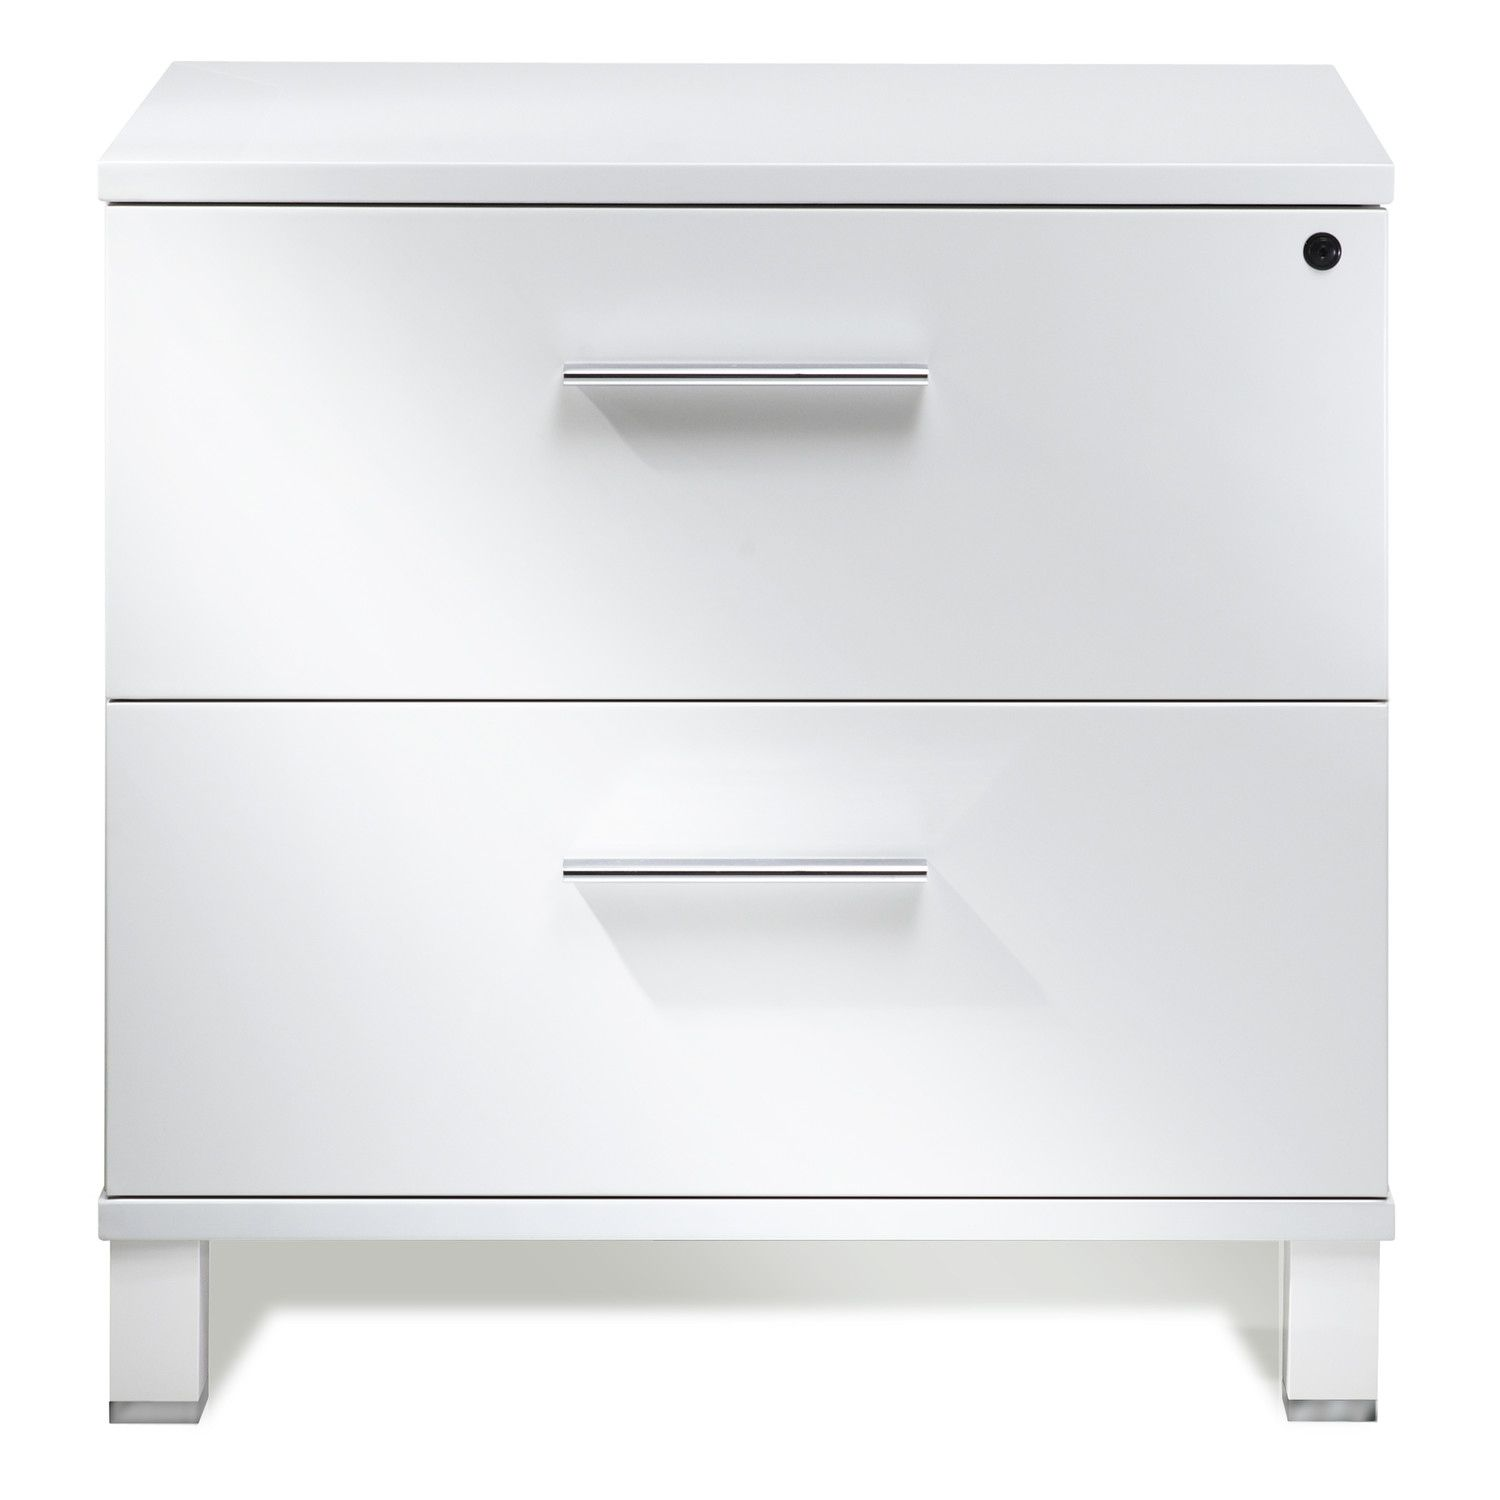 50 Office Storage Cabinets With Locks Large Home Furniture Check More At Http